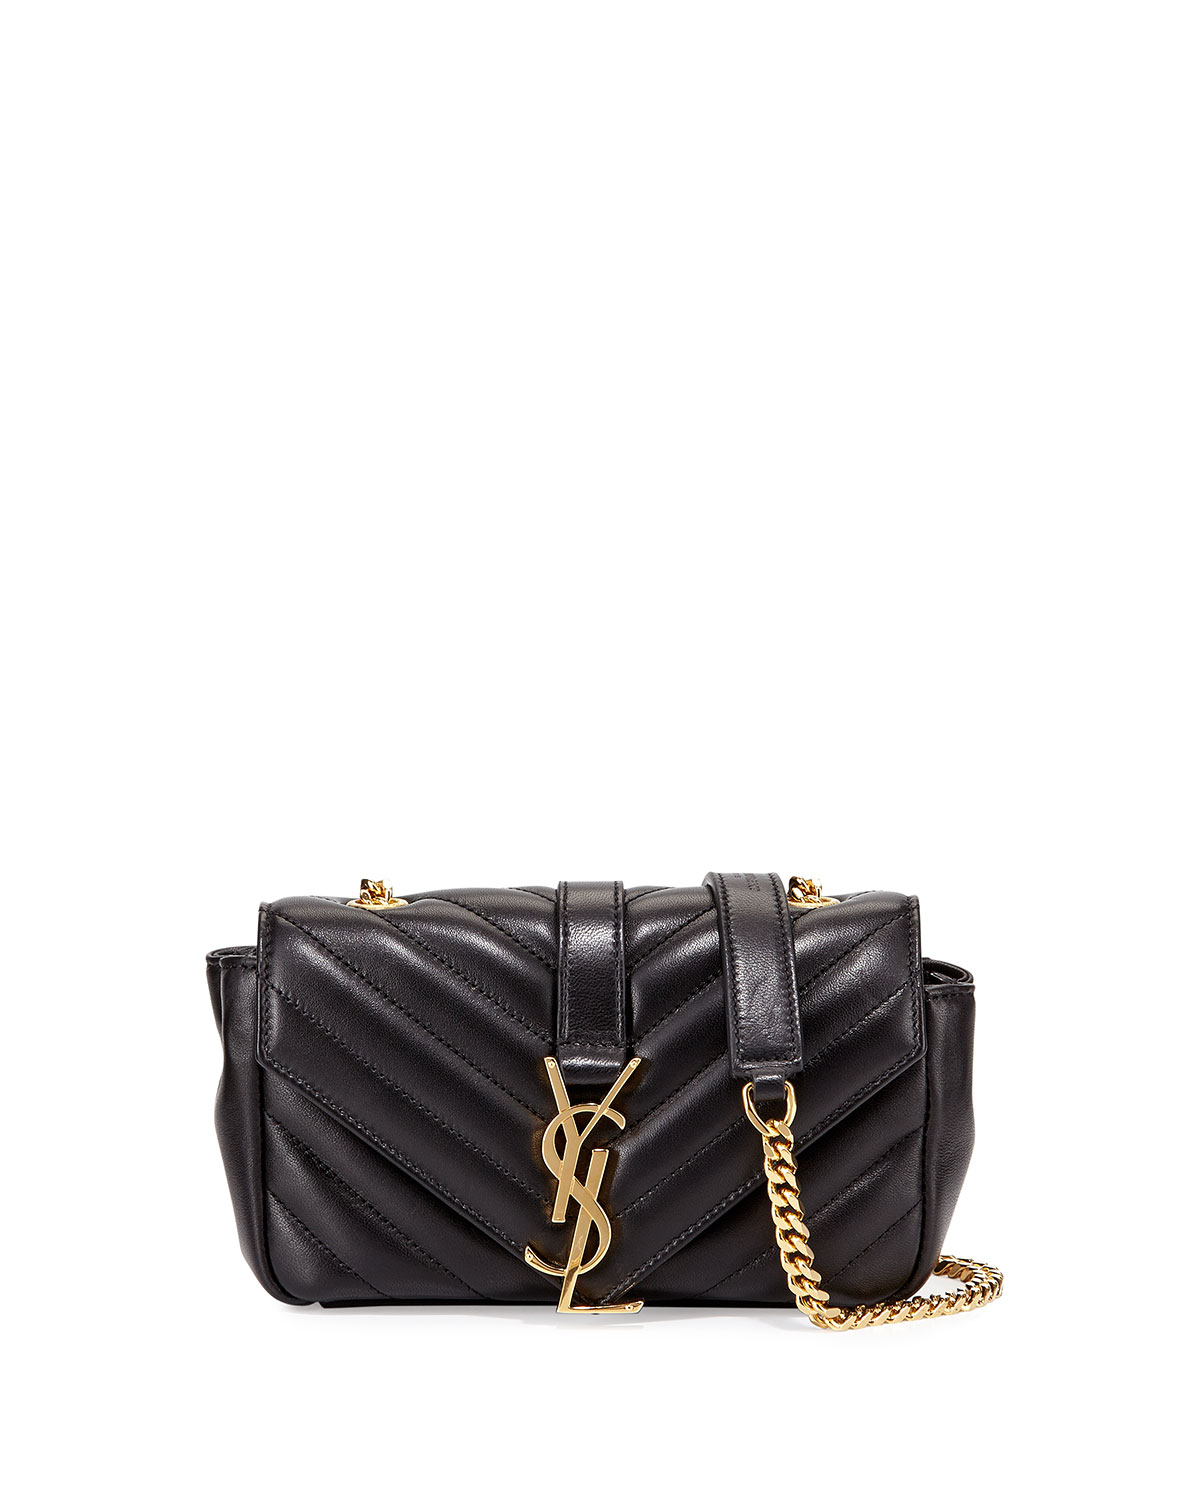 45644acad310 Saint Laurent V Flap Lambskin Leather Mini Crossbody Chain Bag ...